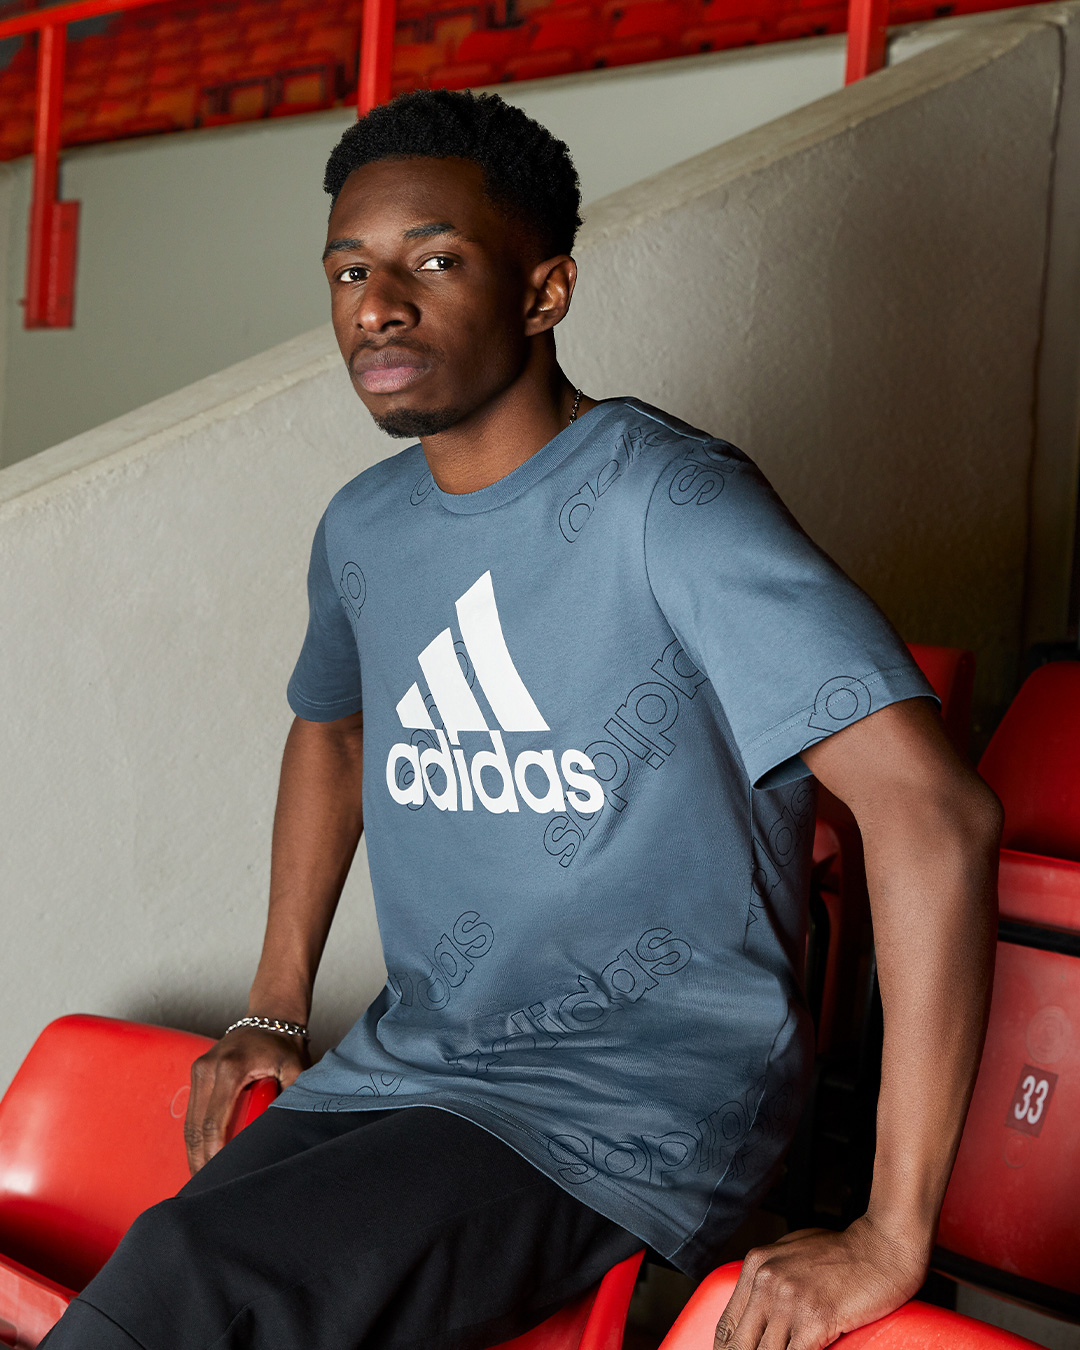 adidas-tobjizzle-supporting-image-2